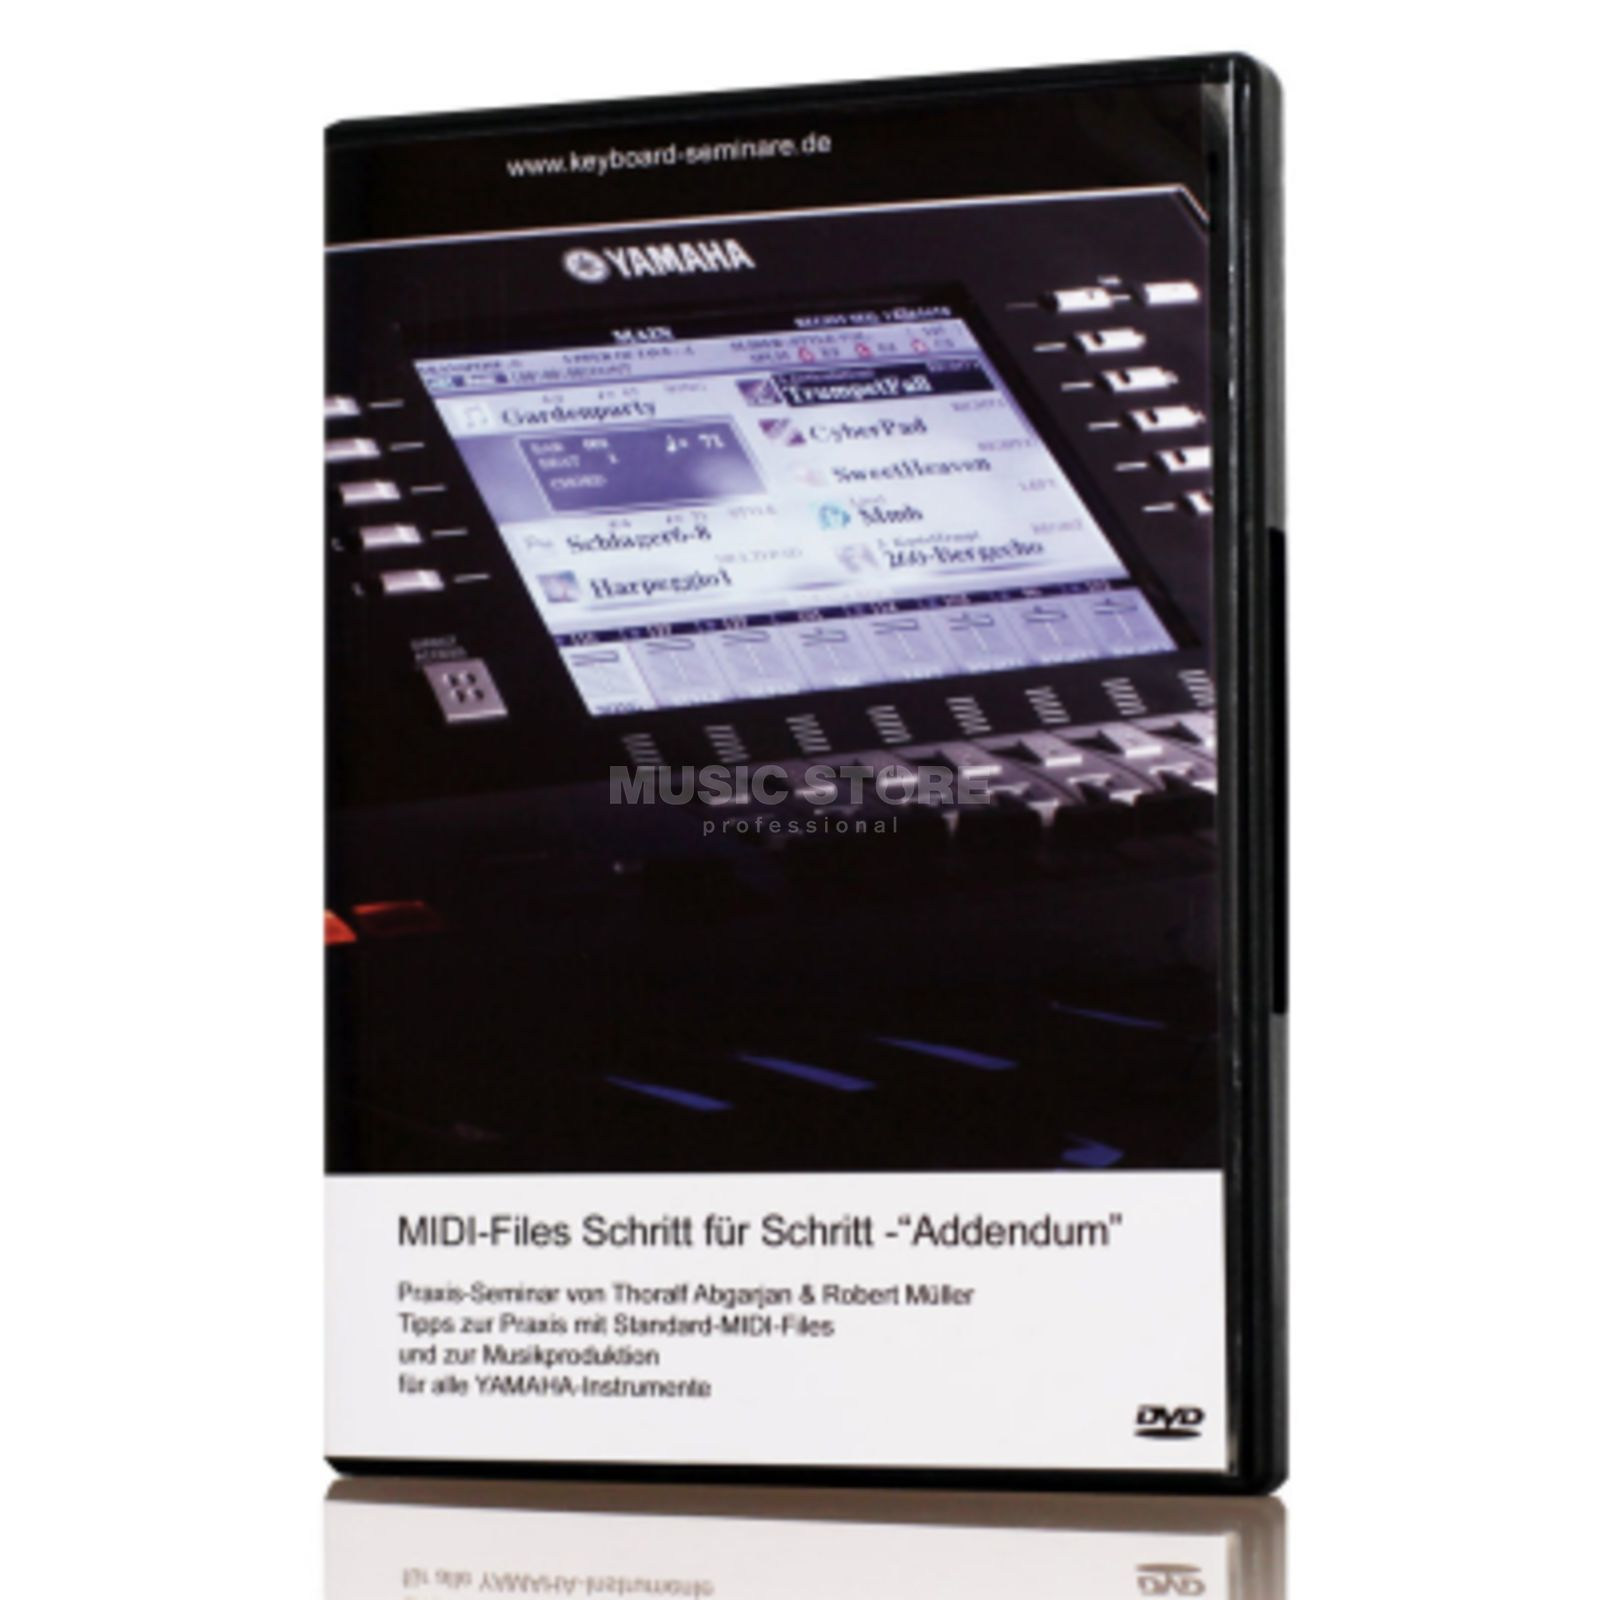 Keyboard-Seminare MIDI-files step by step Video DVD (German) Produktbillede